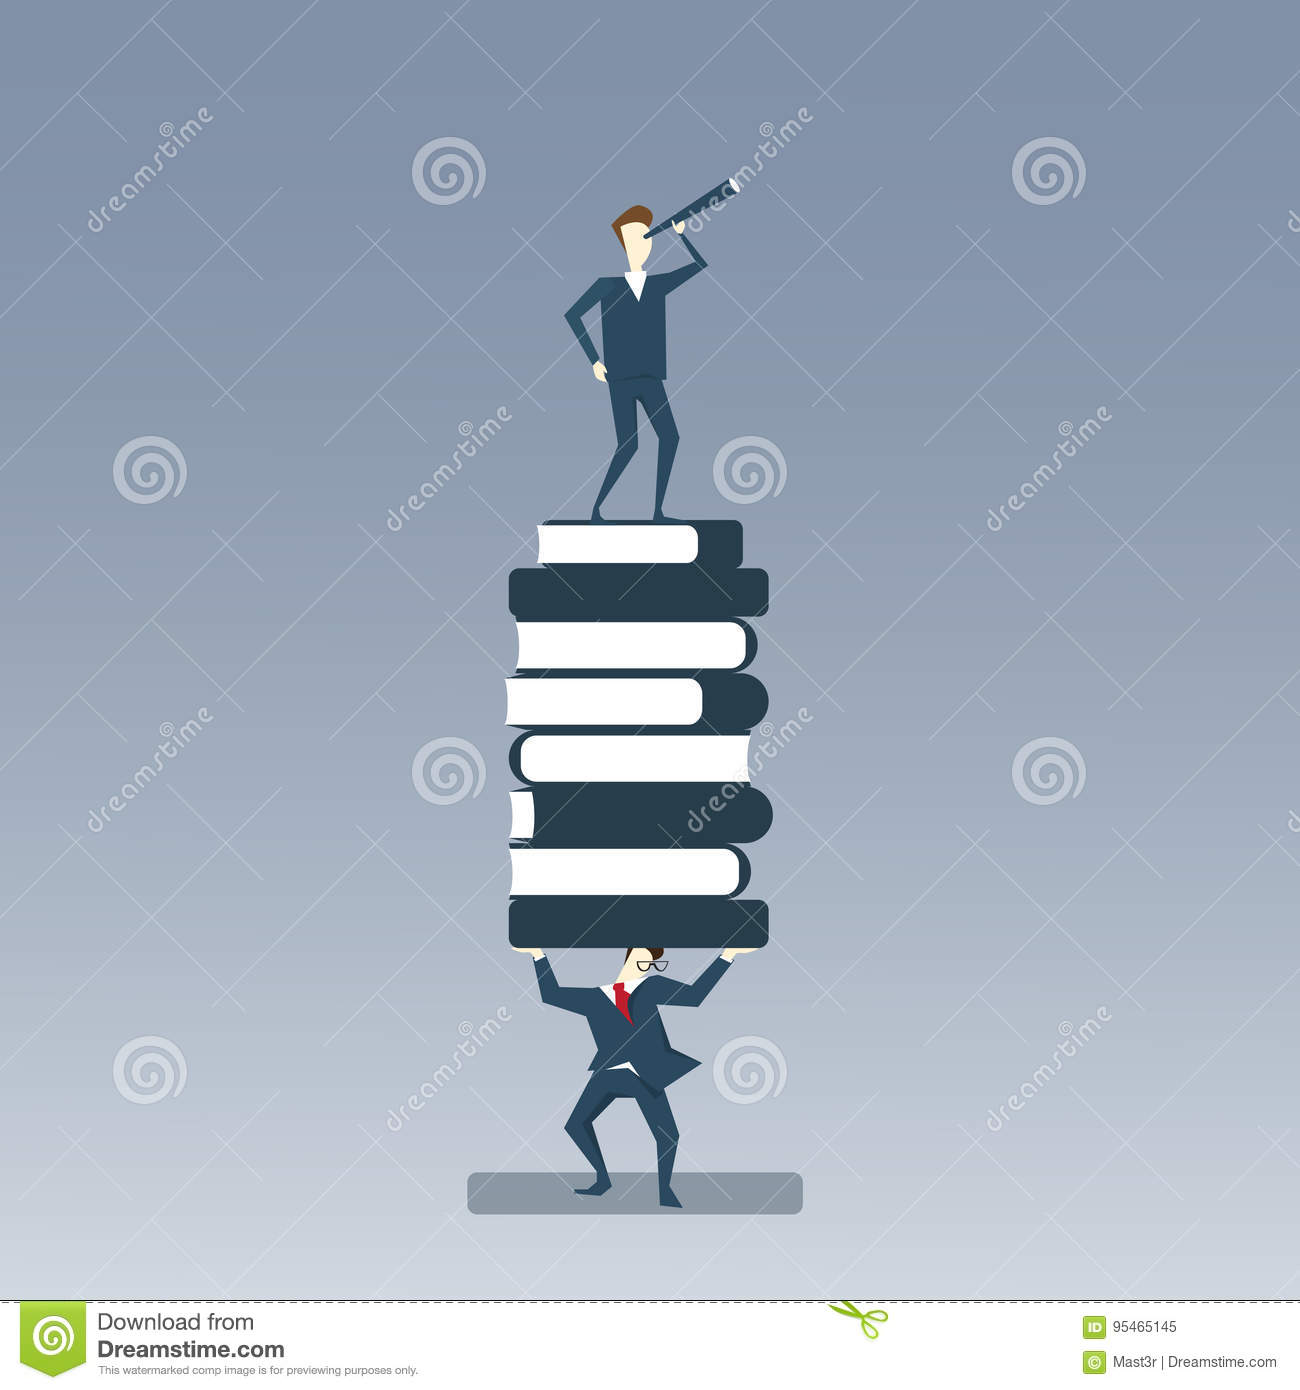 Business Man Holding Books Stack With Businessman Looking Through Binocular On Top Search New Creative Idea Concept